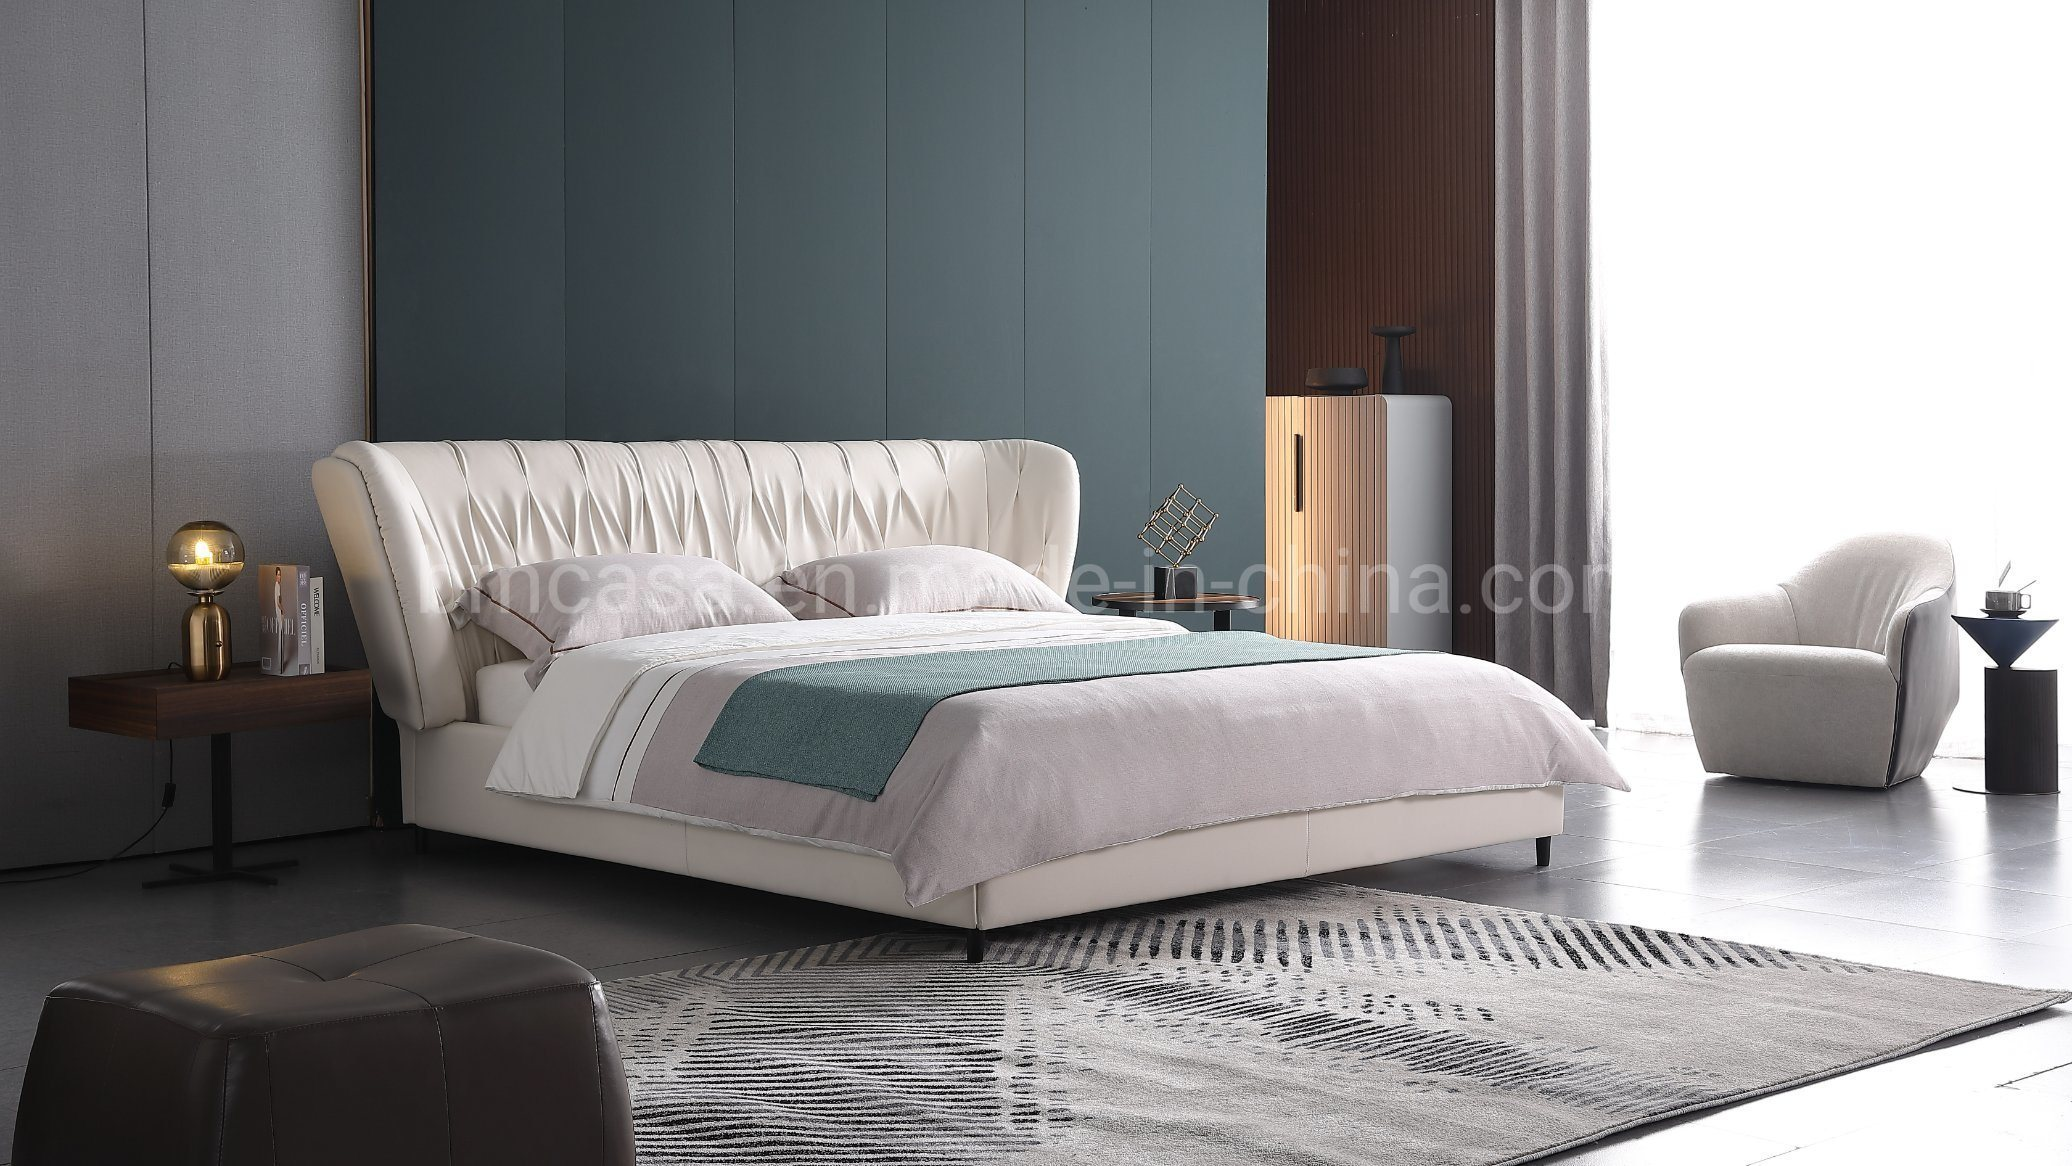 China Italian Modern Leather King Size Bed For Bedroom Furniture China Fabric Beds Living Room Furniture